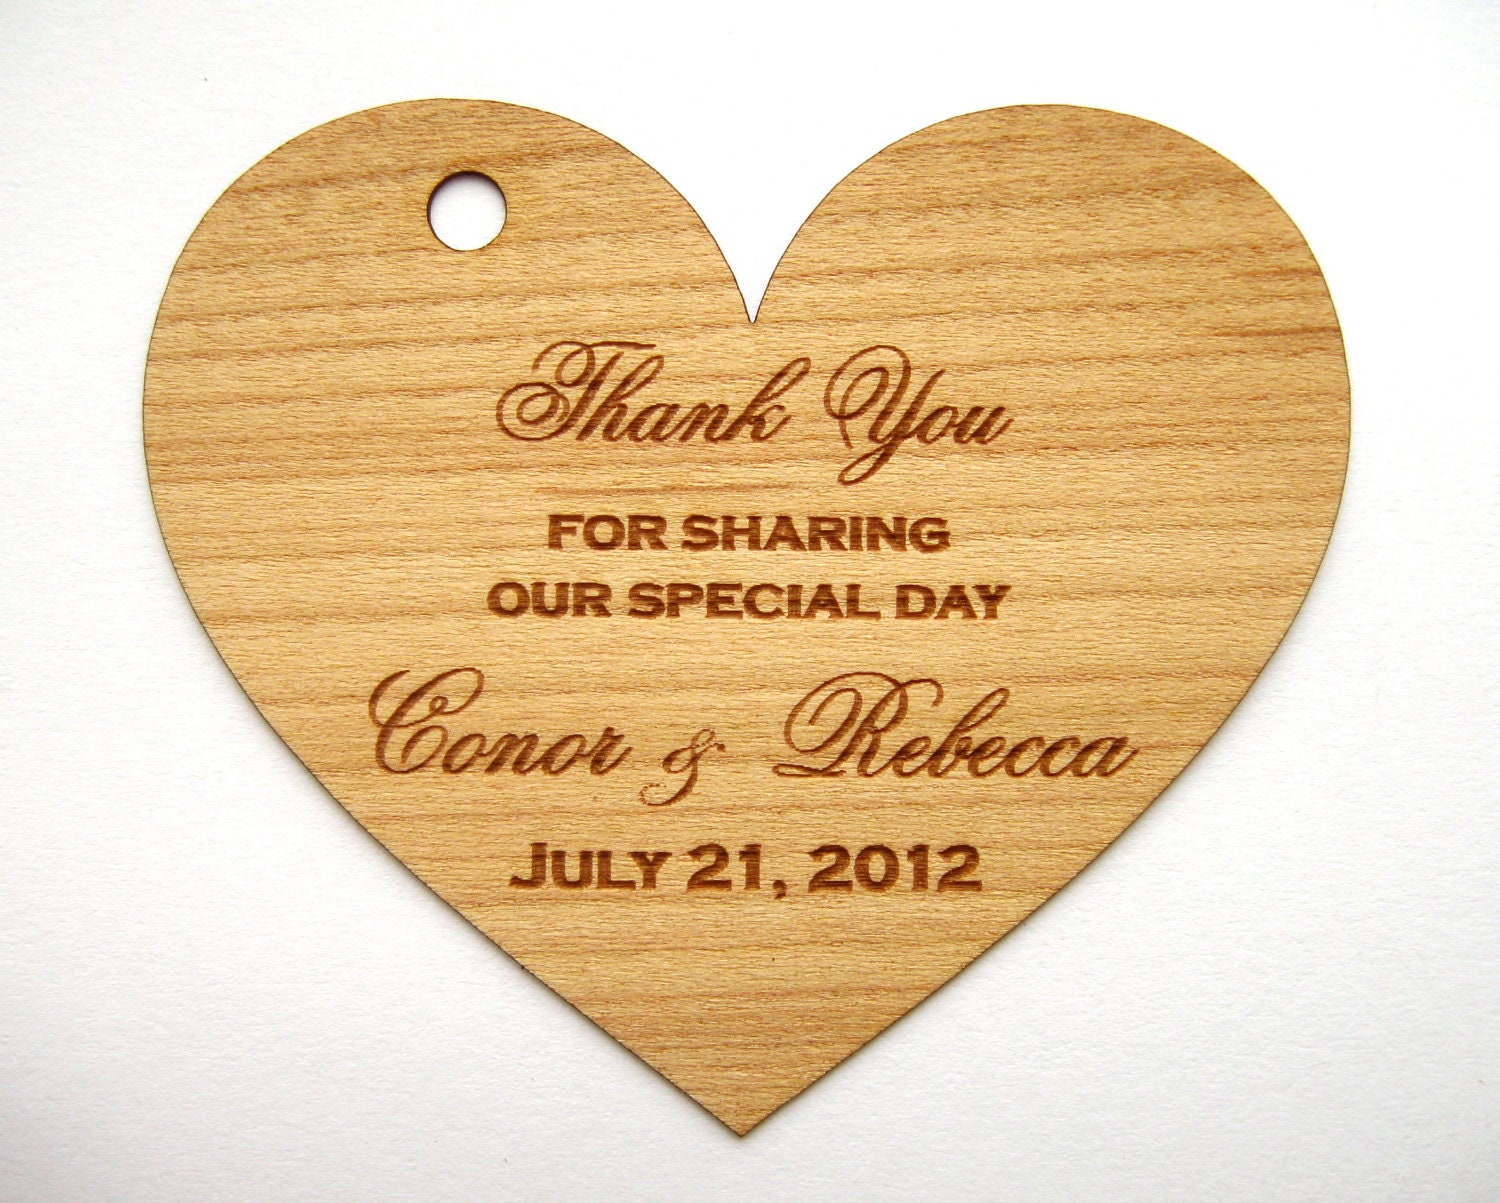 Wedding Heart Gift Tags : Heart Tags Favor tags Wedding Heart tags Rustic heart by Talathiel